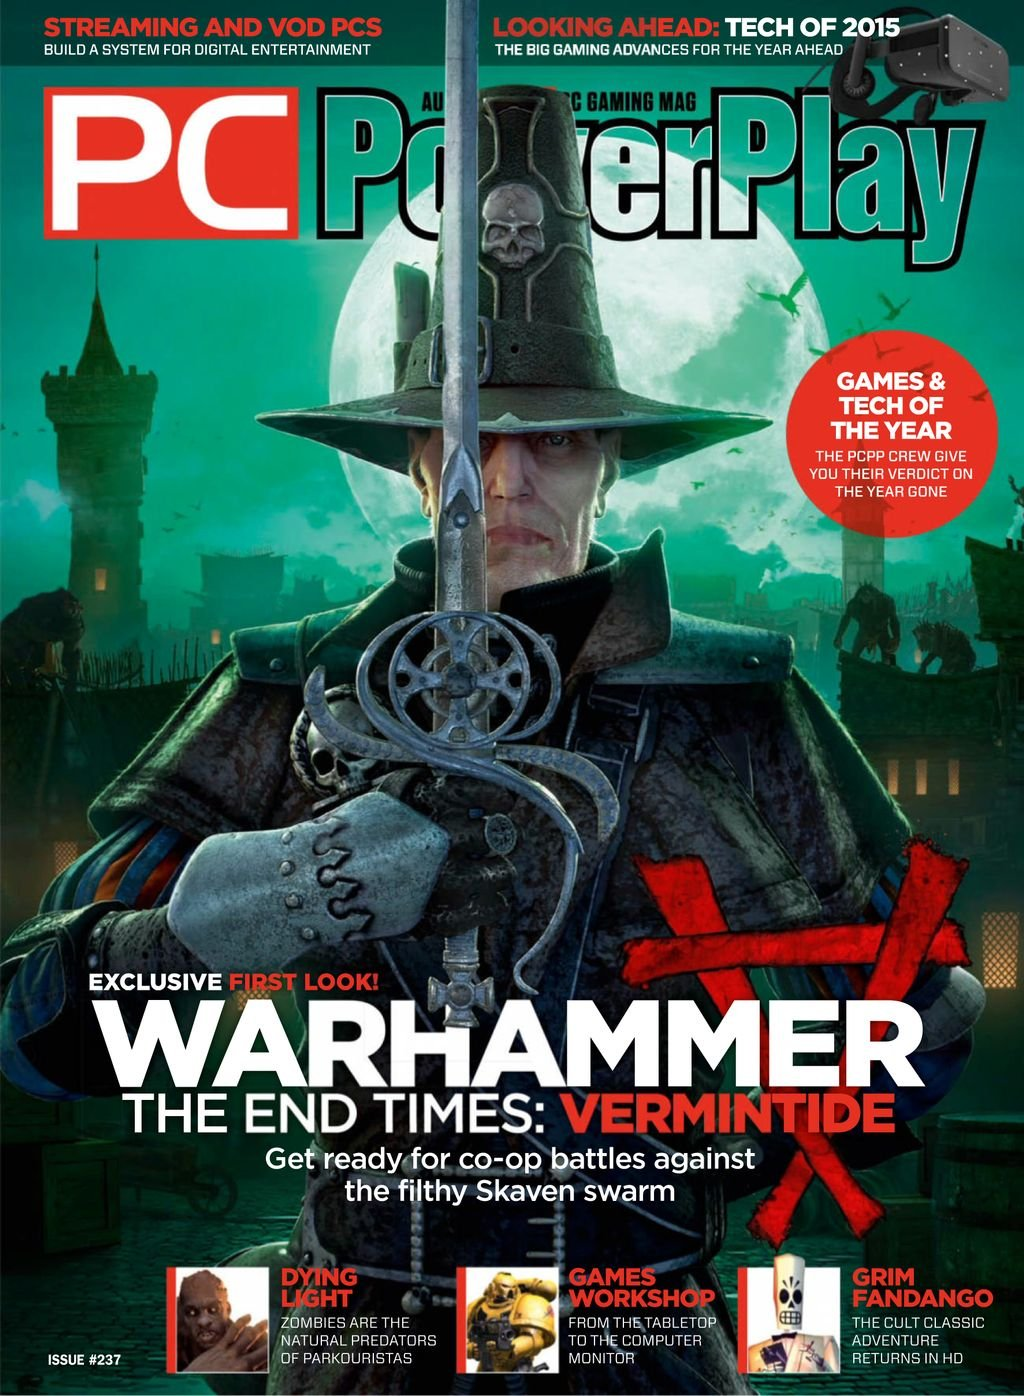 PC Powerplay 237 (March 2015)